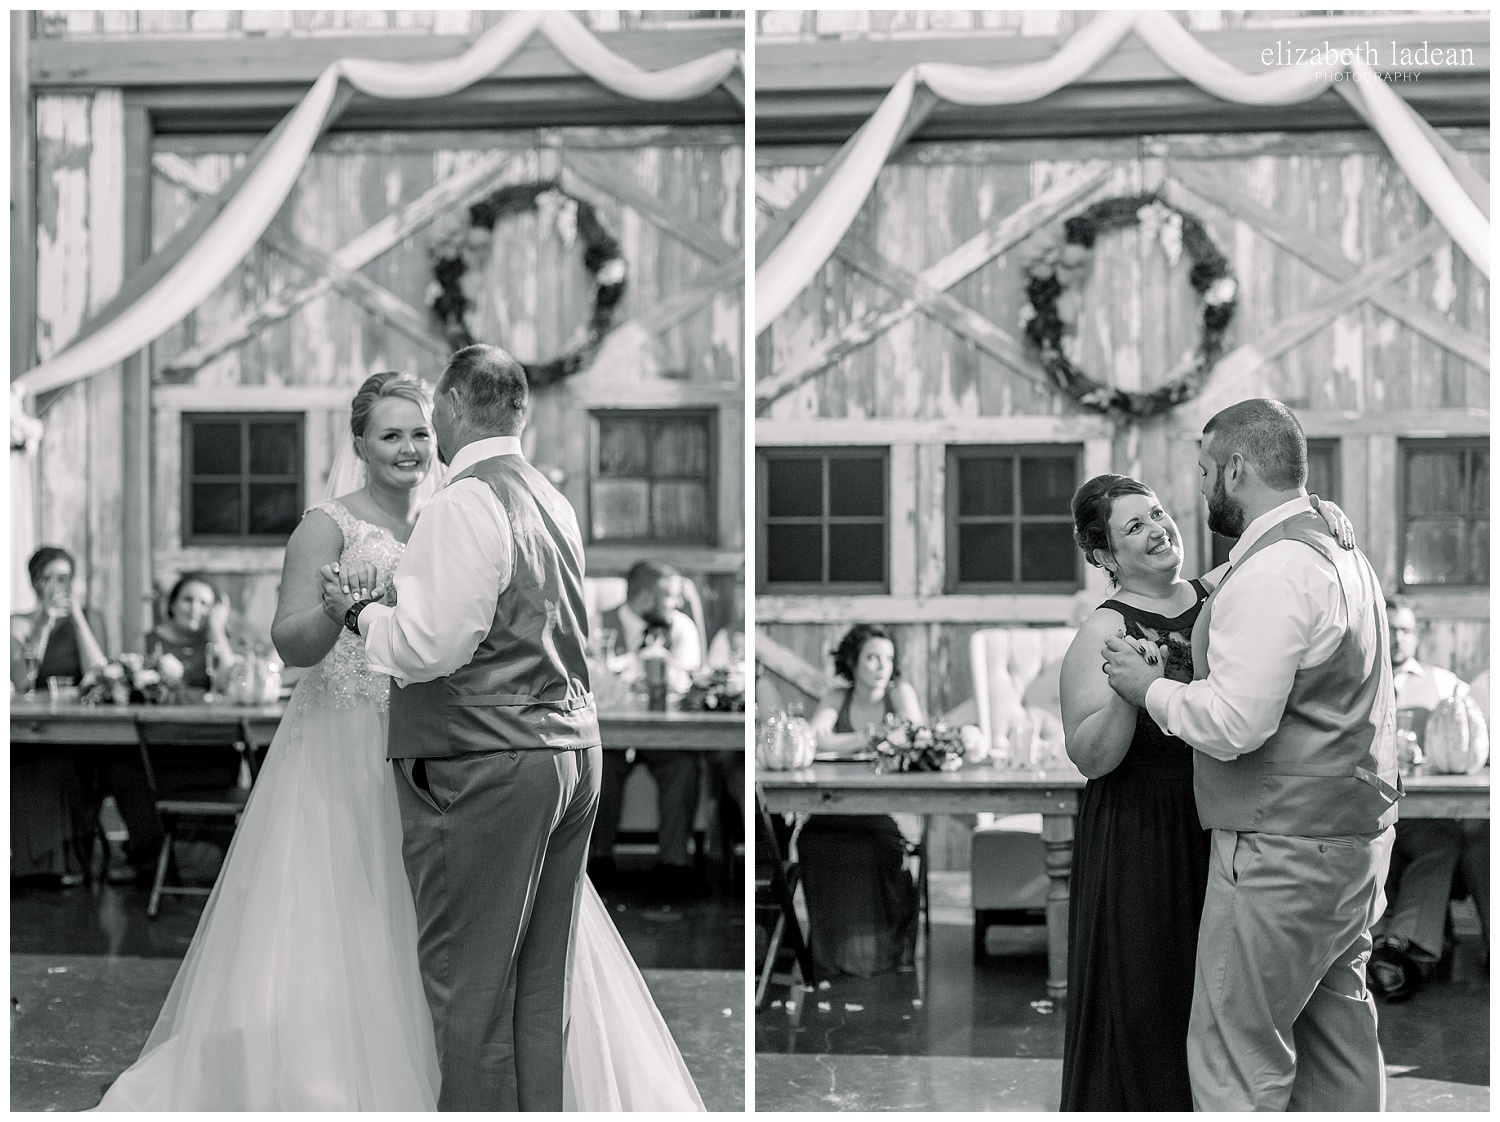 Weston-Timber-Barn-Wedding-Photography-L+A-elizabeth-ladean0photo_1915.jpg